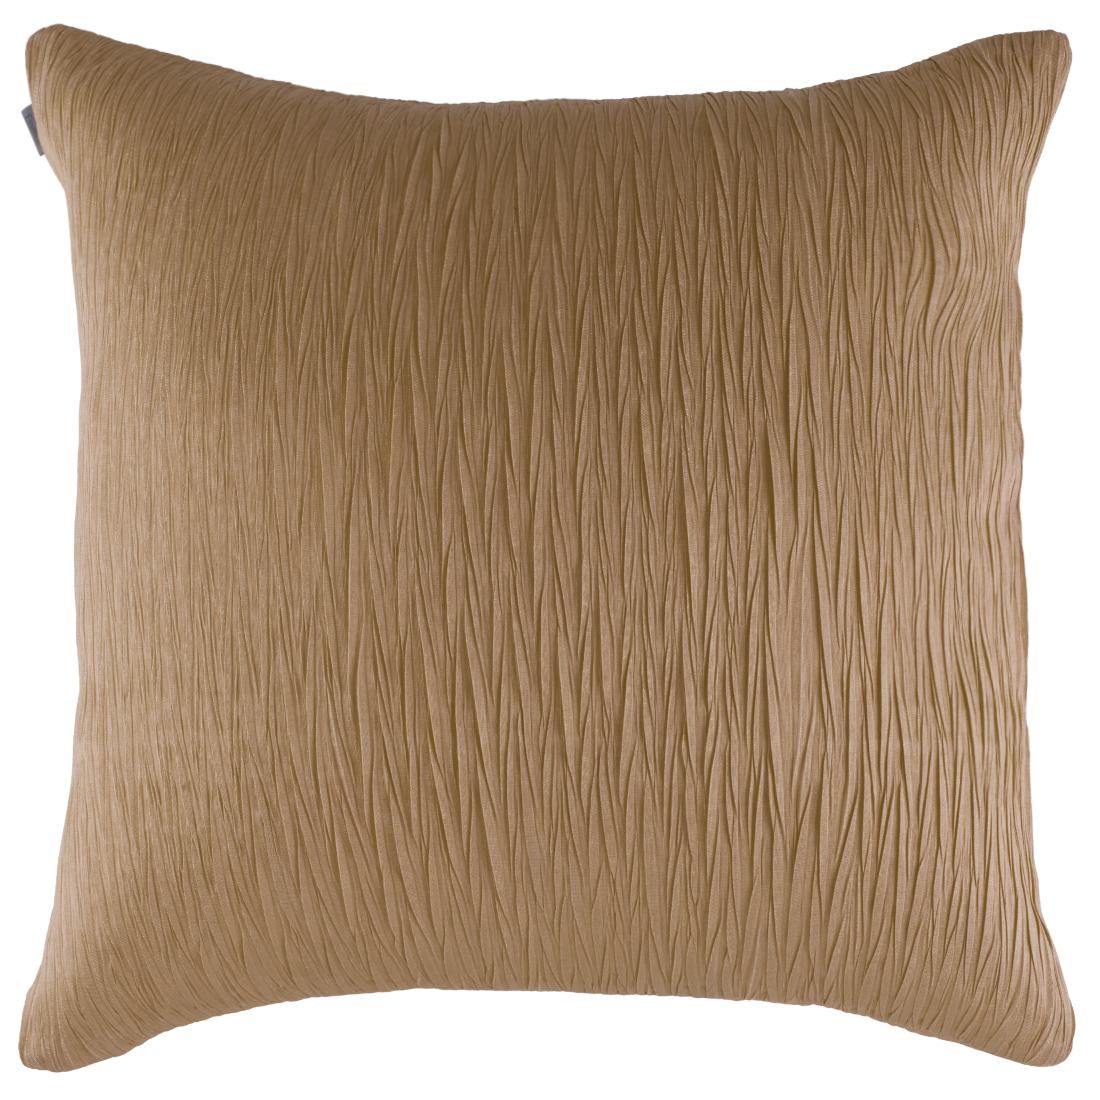 Blossom Polyester Cushion Covers in Mocha Colour by Living Essence